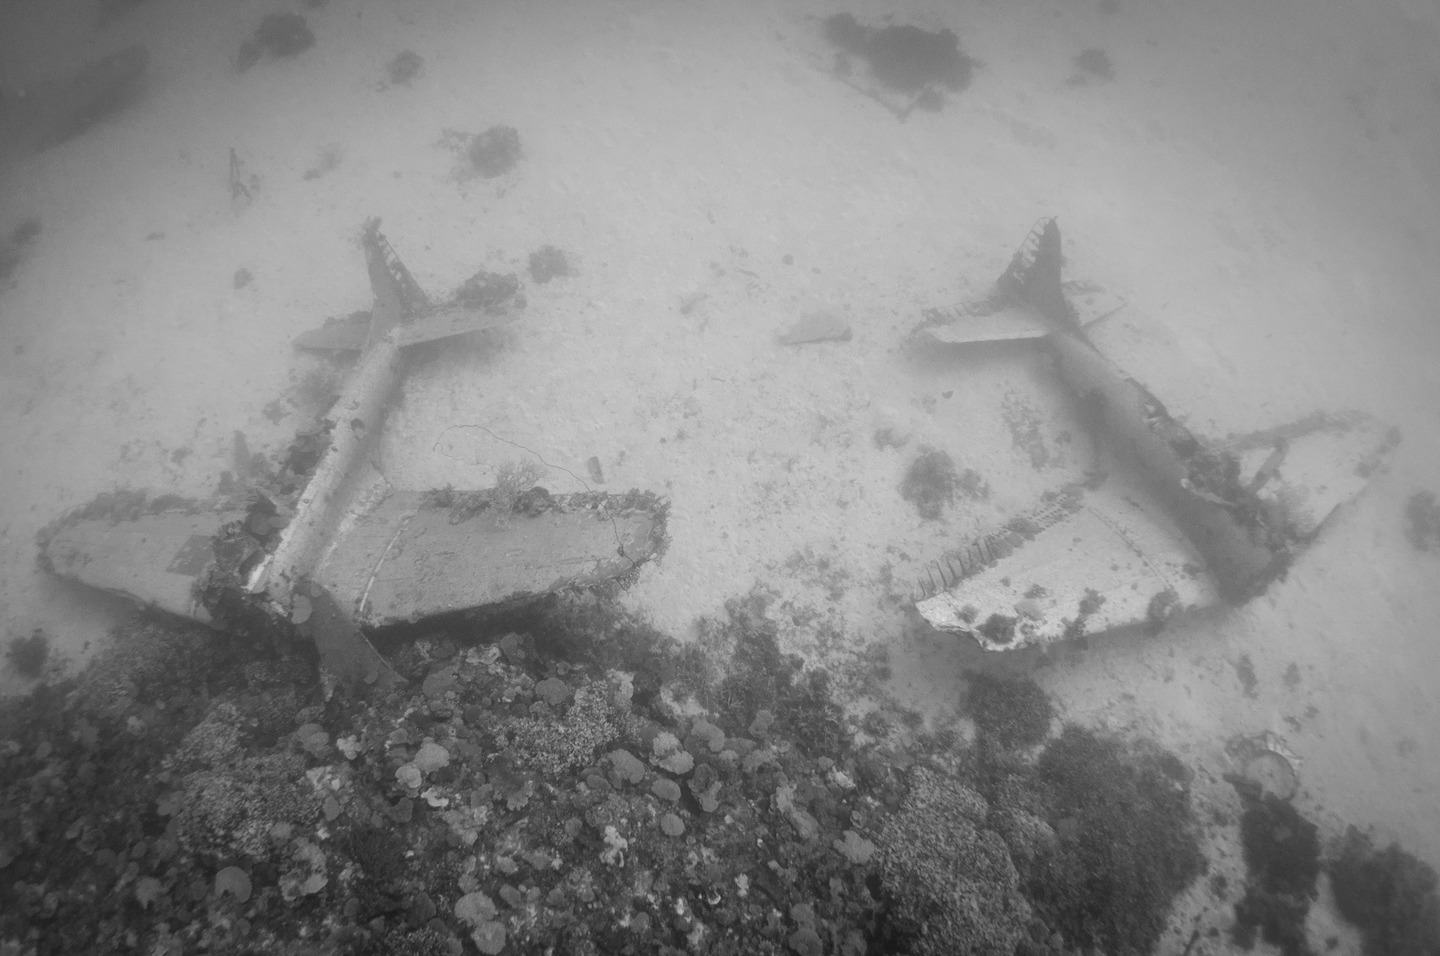 The Pacific Ocean Bed Is A Graveyard For World War II Planes  dsc0239